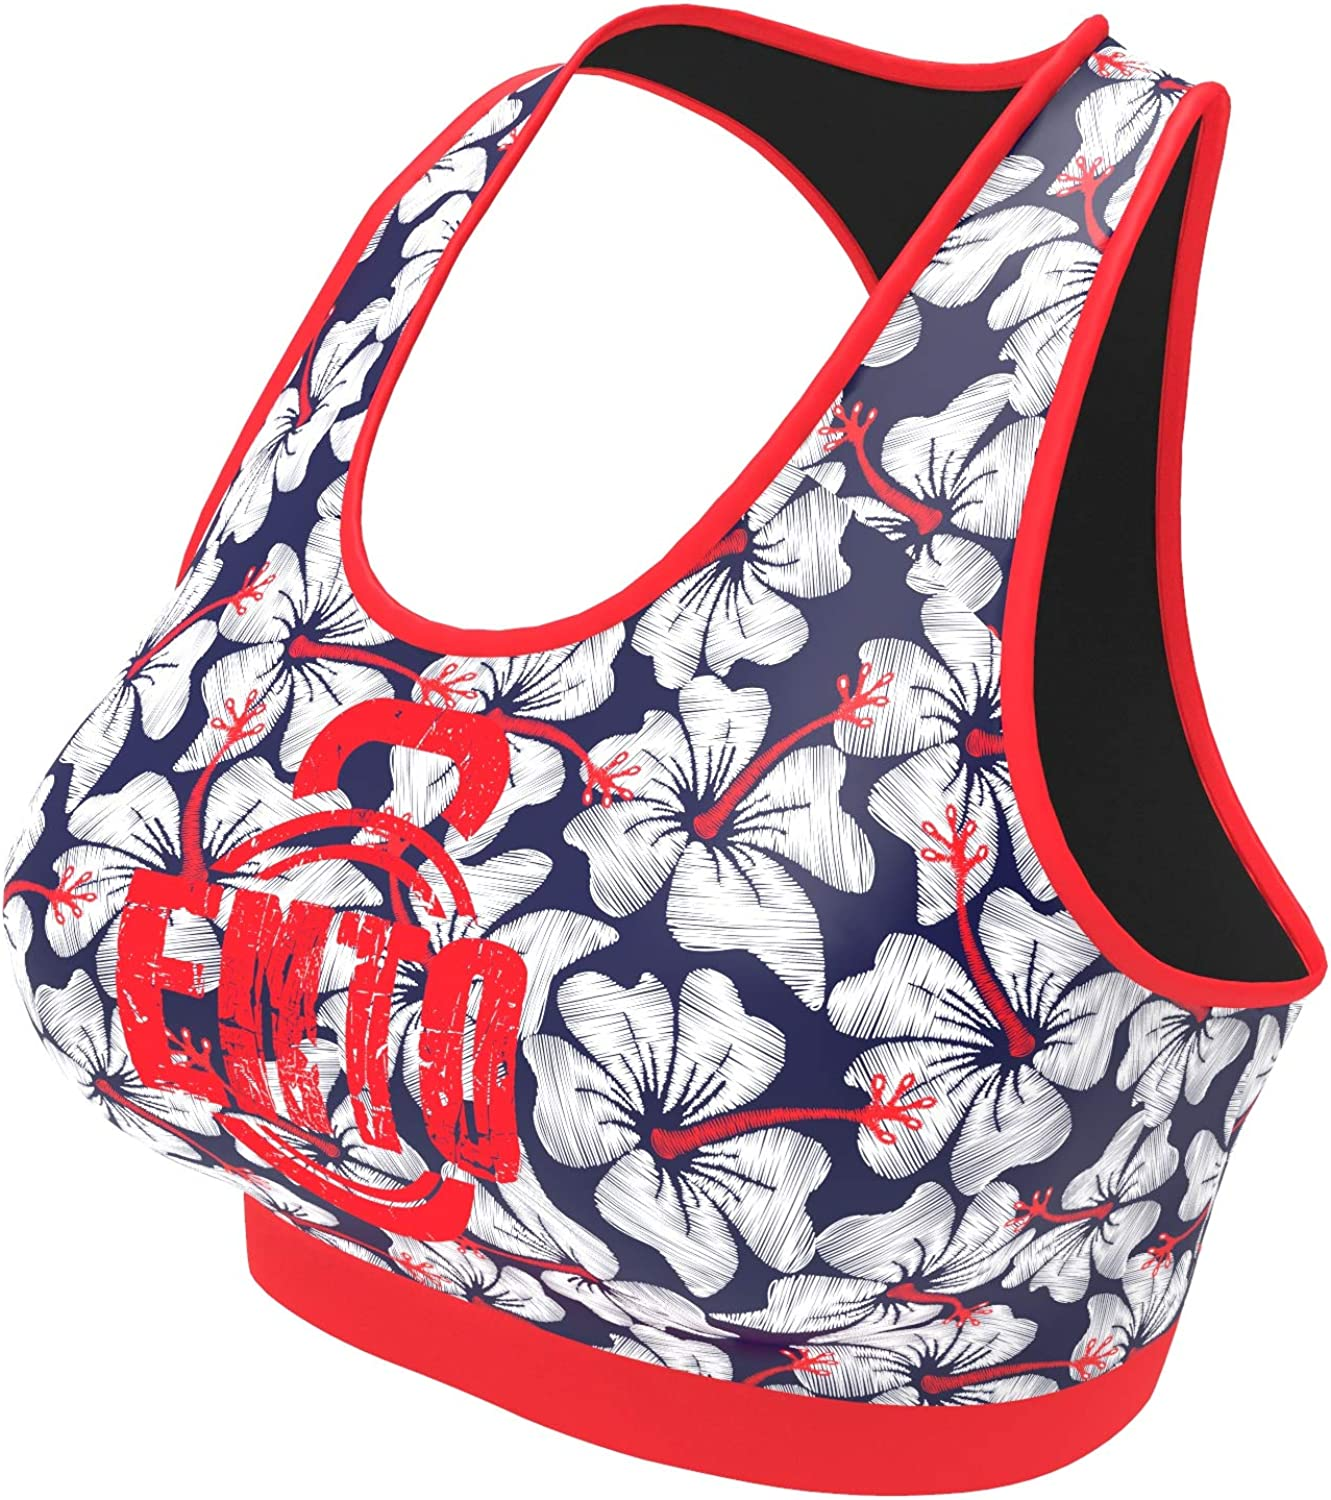 Womens Workout Outfits 2 Piece Embroided Flowers Gym Fitness Yoga Athletic Clothing Sets Activewear